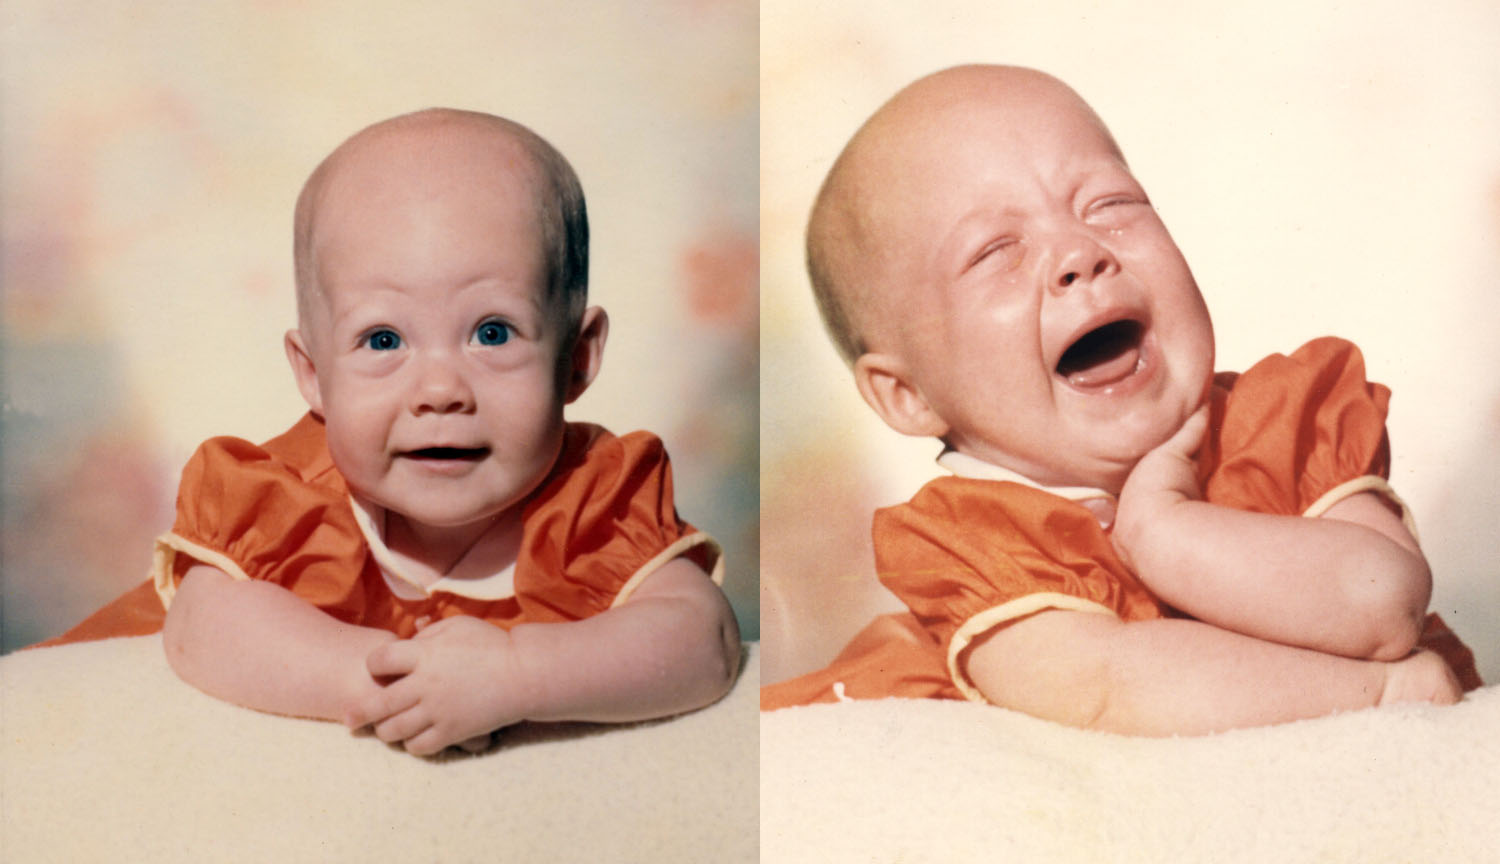 A smiling baby is always cute, but c'mon...is there anything cuter than a crying baby (sans volume)?